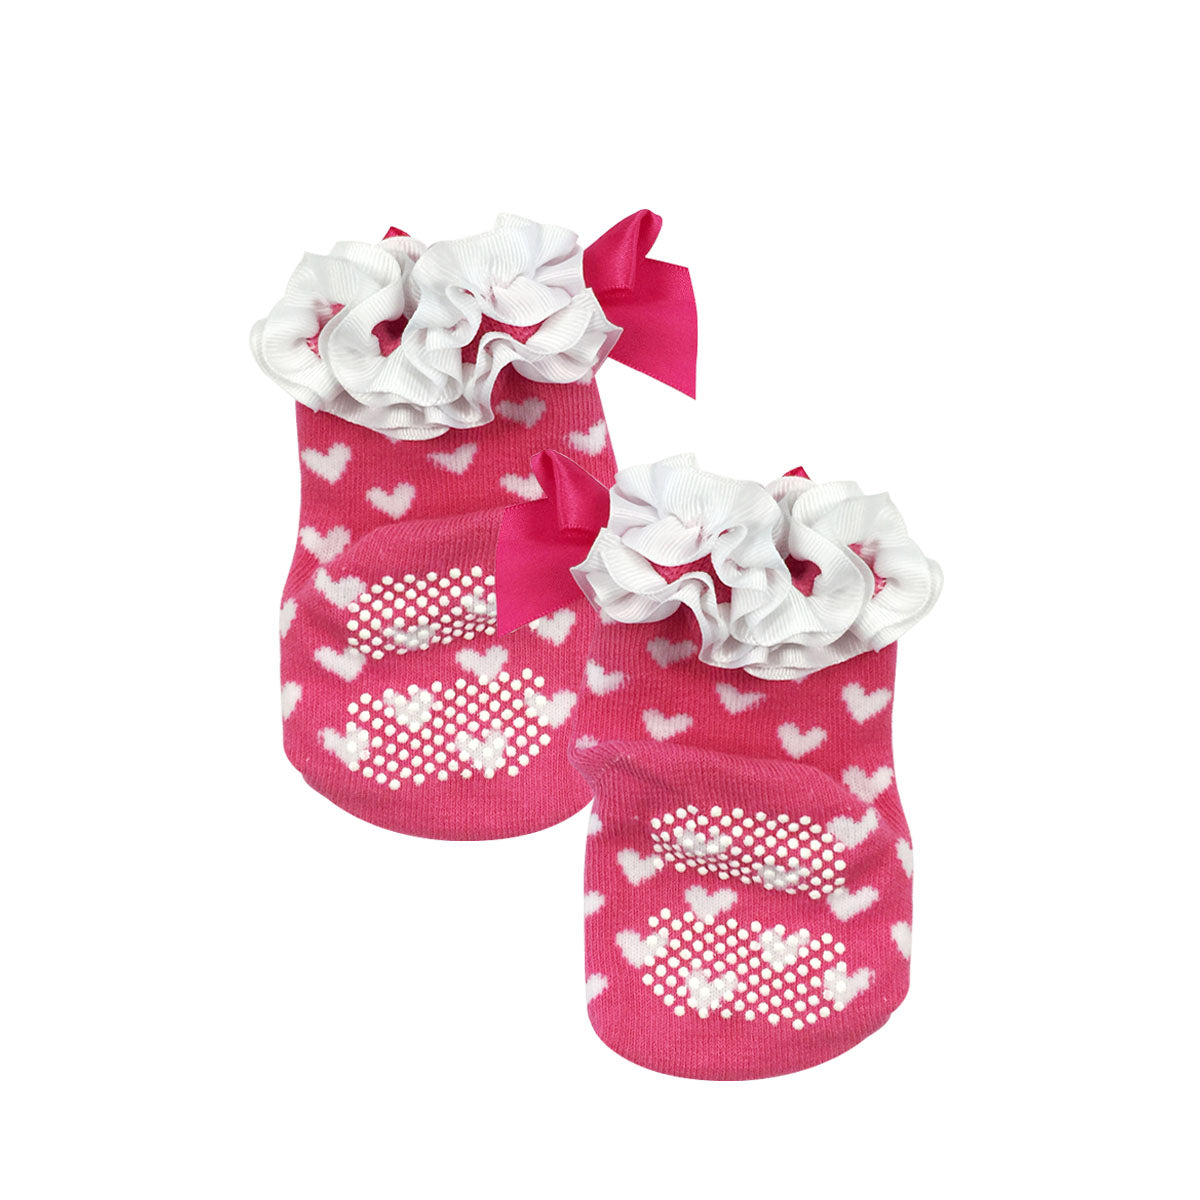 Wrapables Non-Skid Sweetheart Bows and Ruffles Socks (Set of 2)